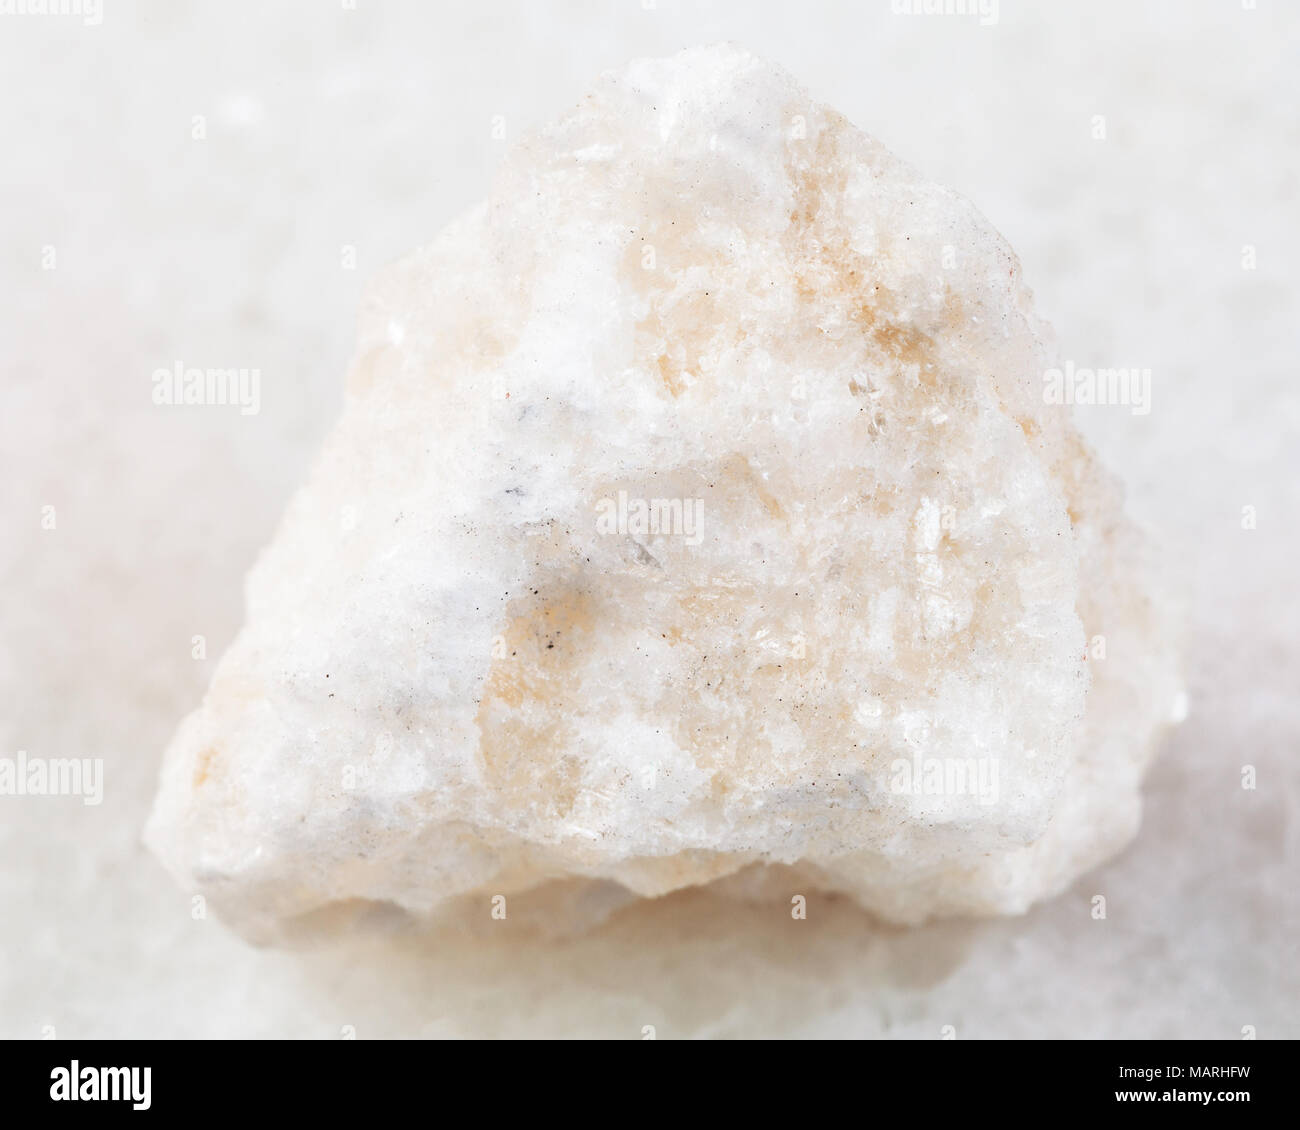 macro shooting of natural mineral rock specimen - rough anhydrite stone on white marble background from Adygea, Russia - Stock Image